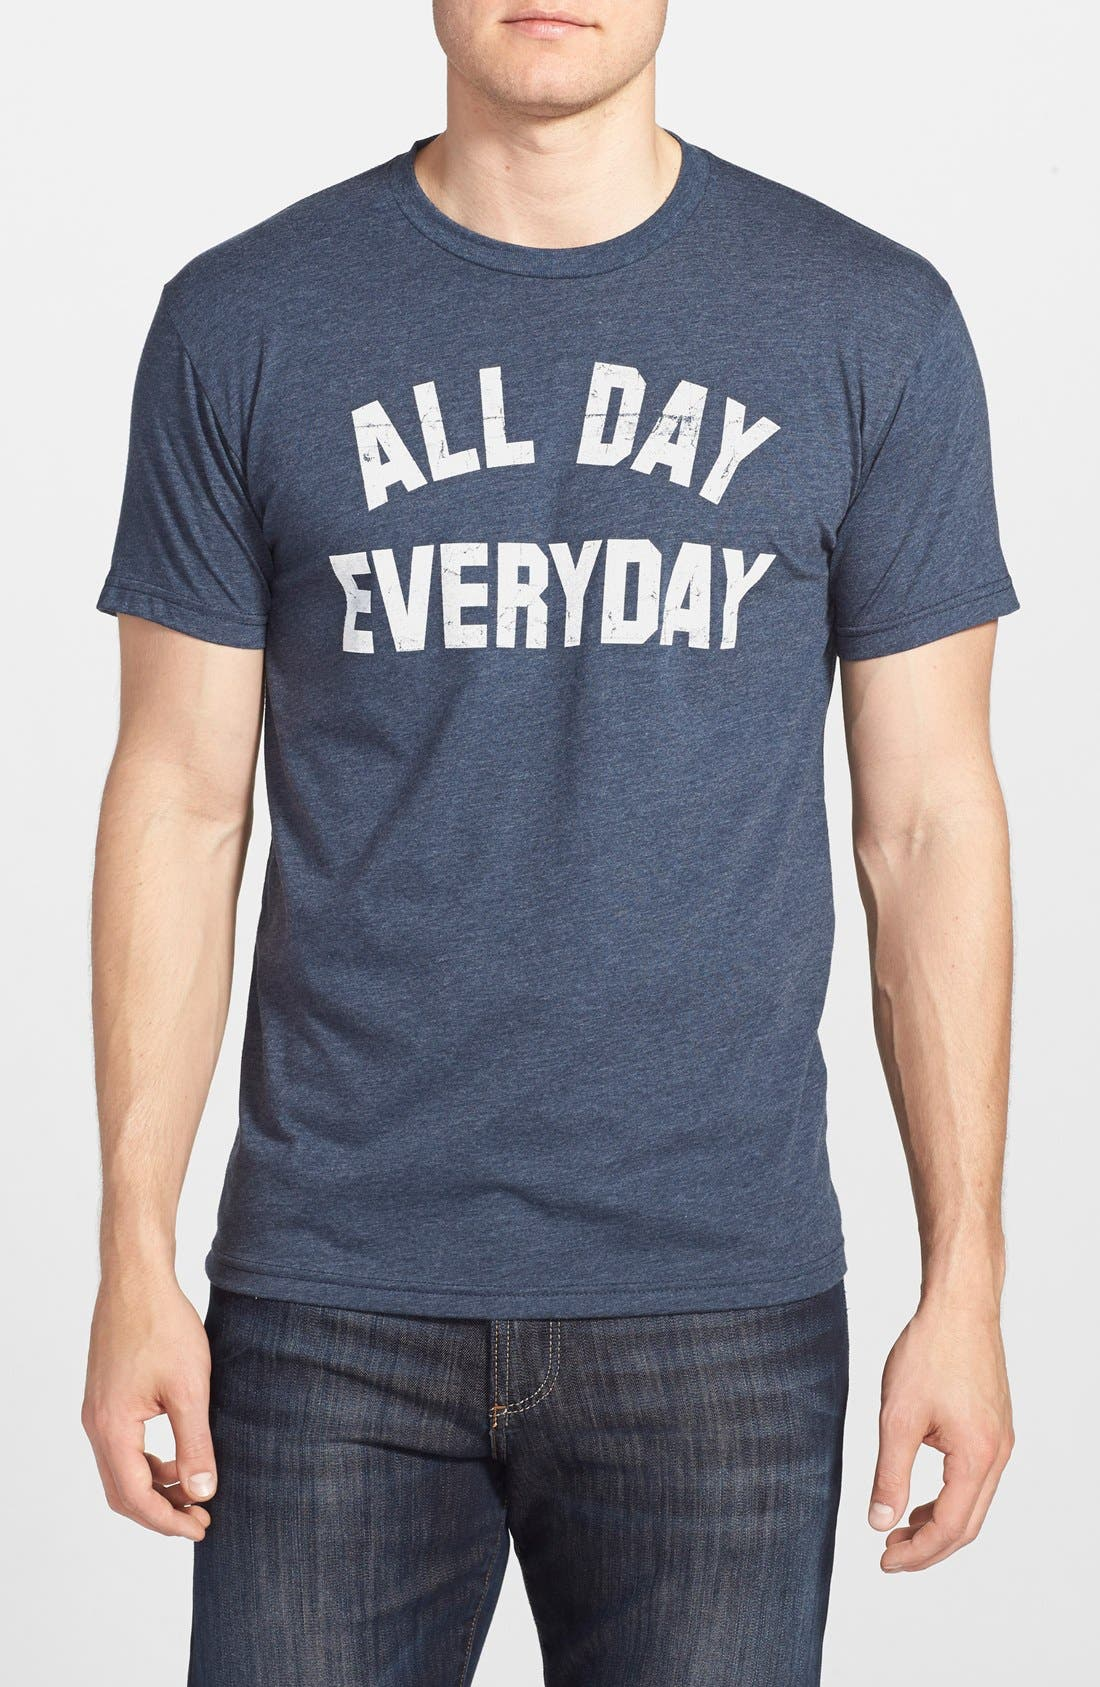 Kid Dangerous 'All Day Everyday' T-Shirt